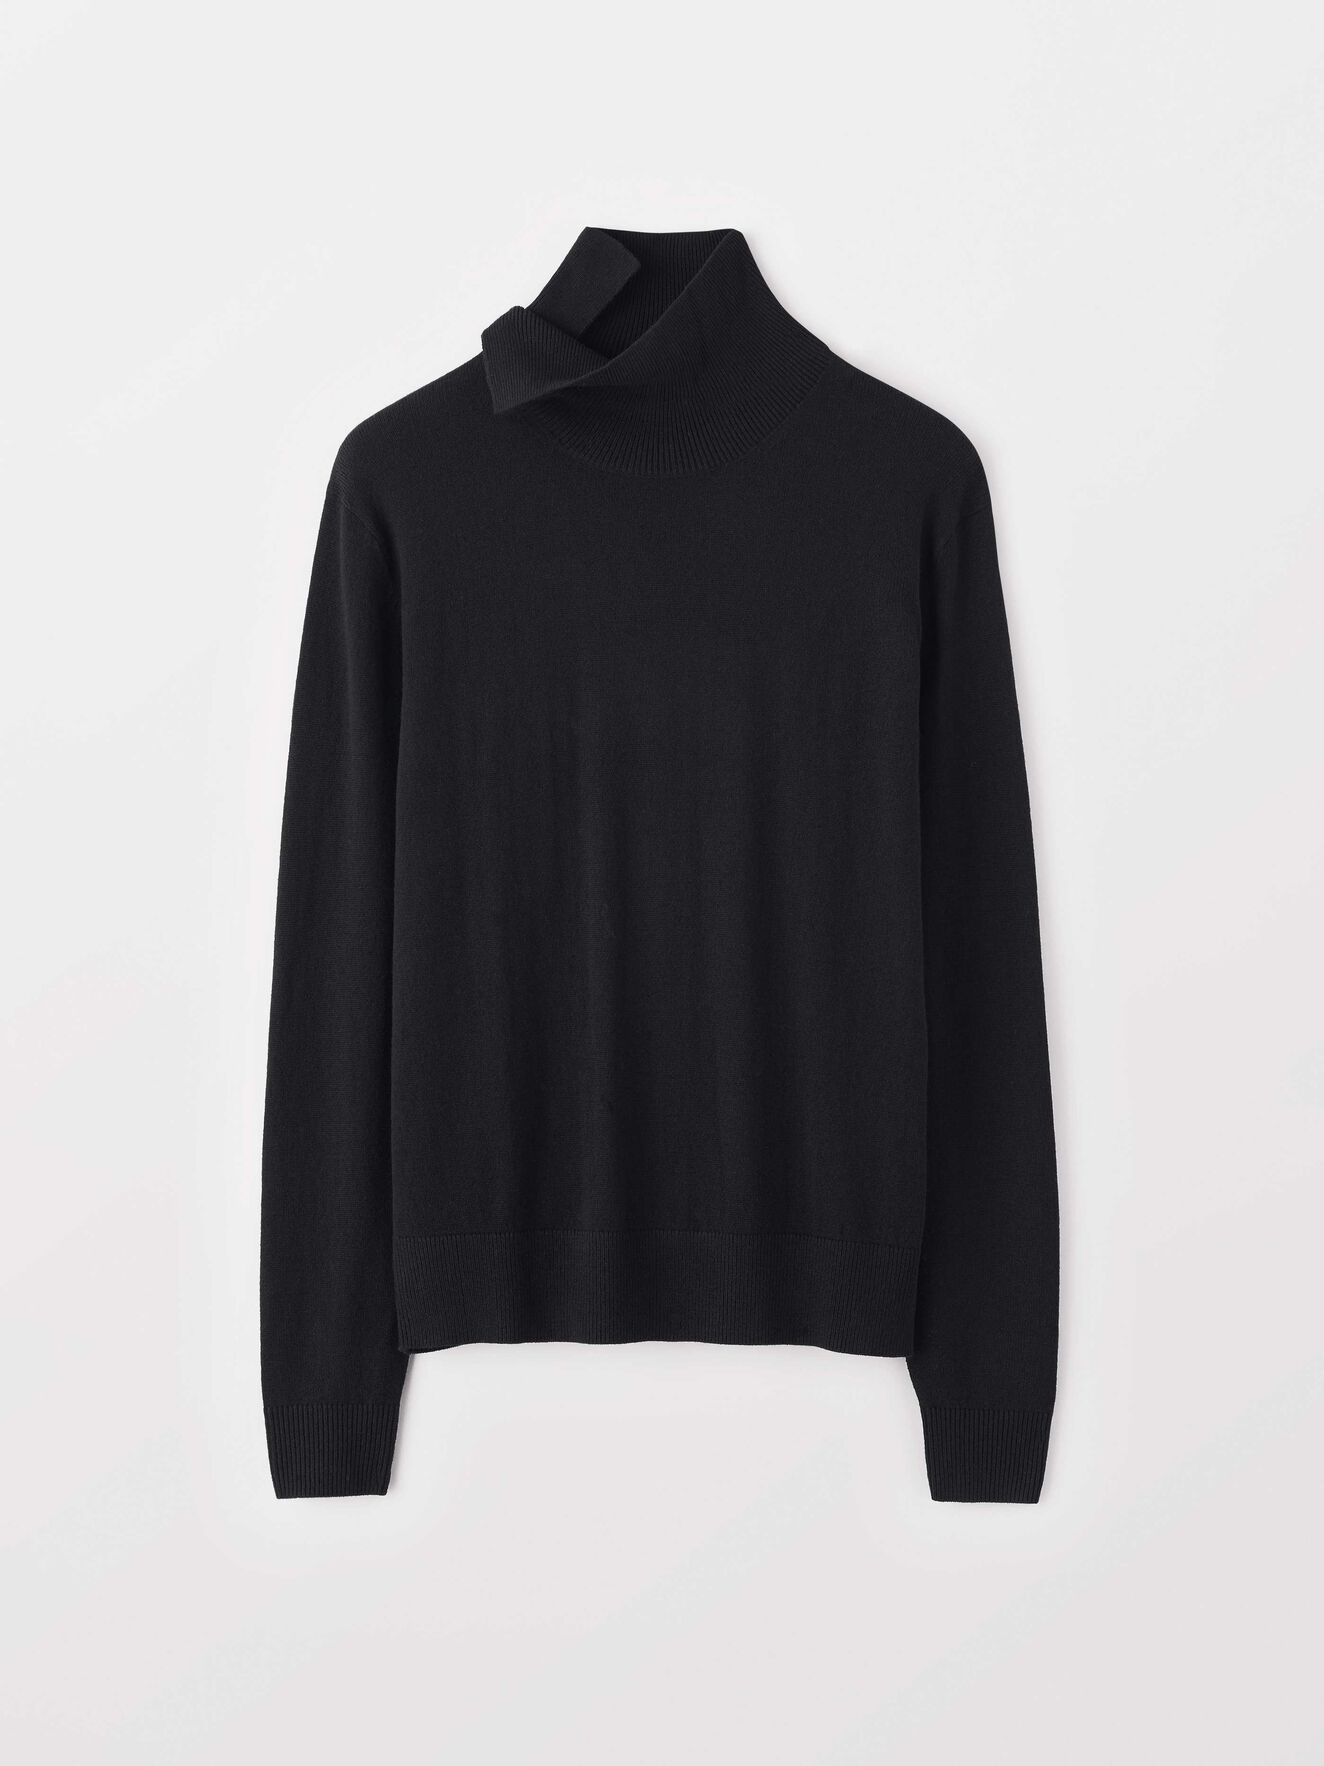 Neander Pullover in Black from Tiger of Sweden